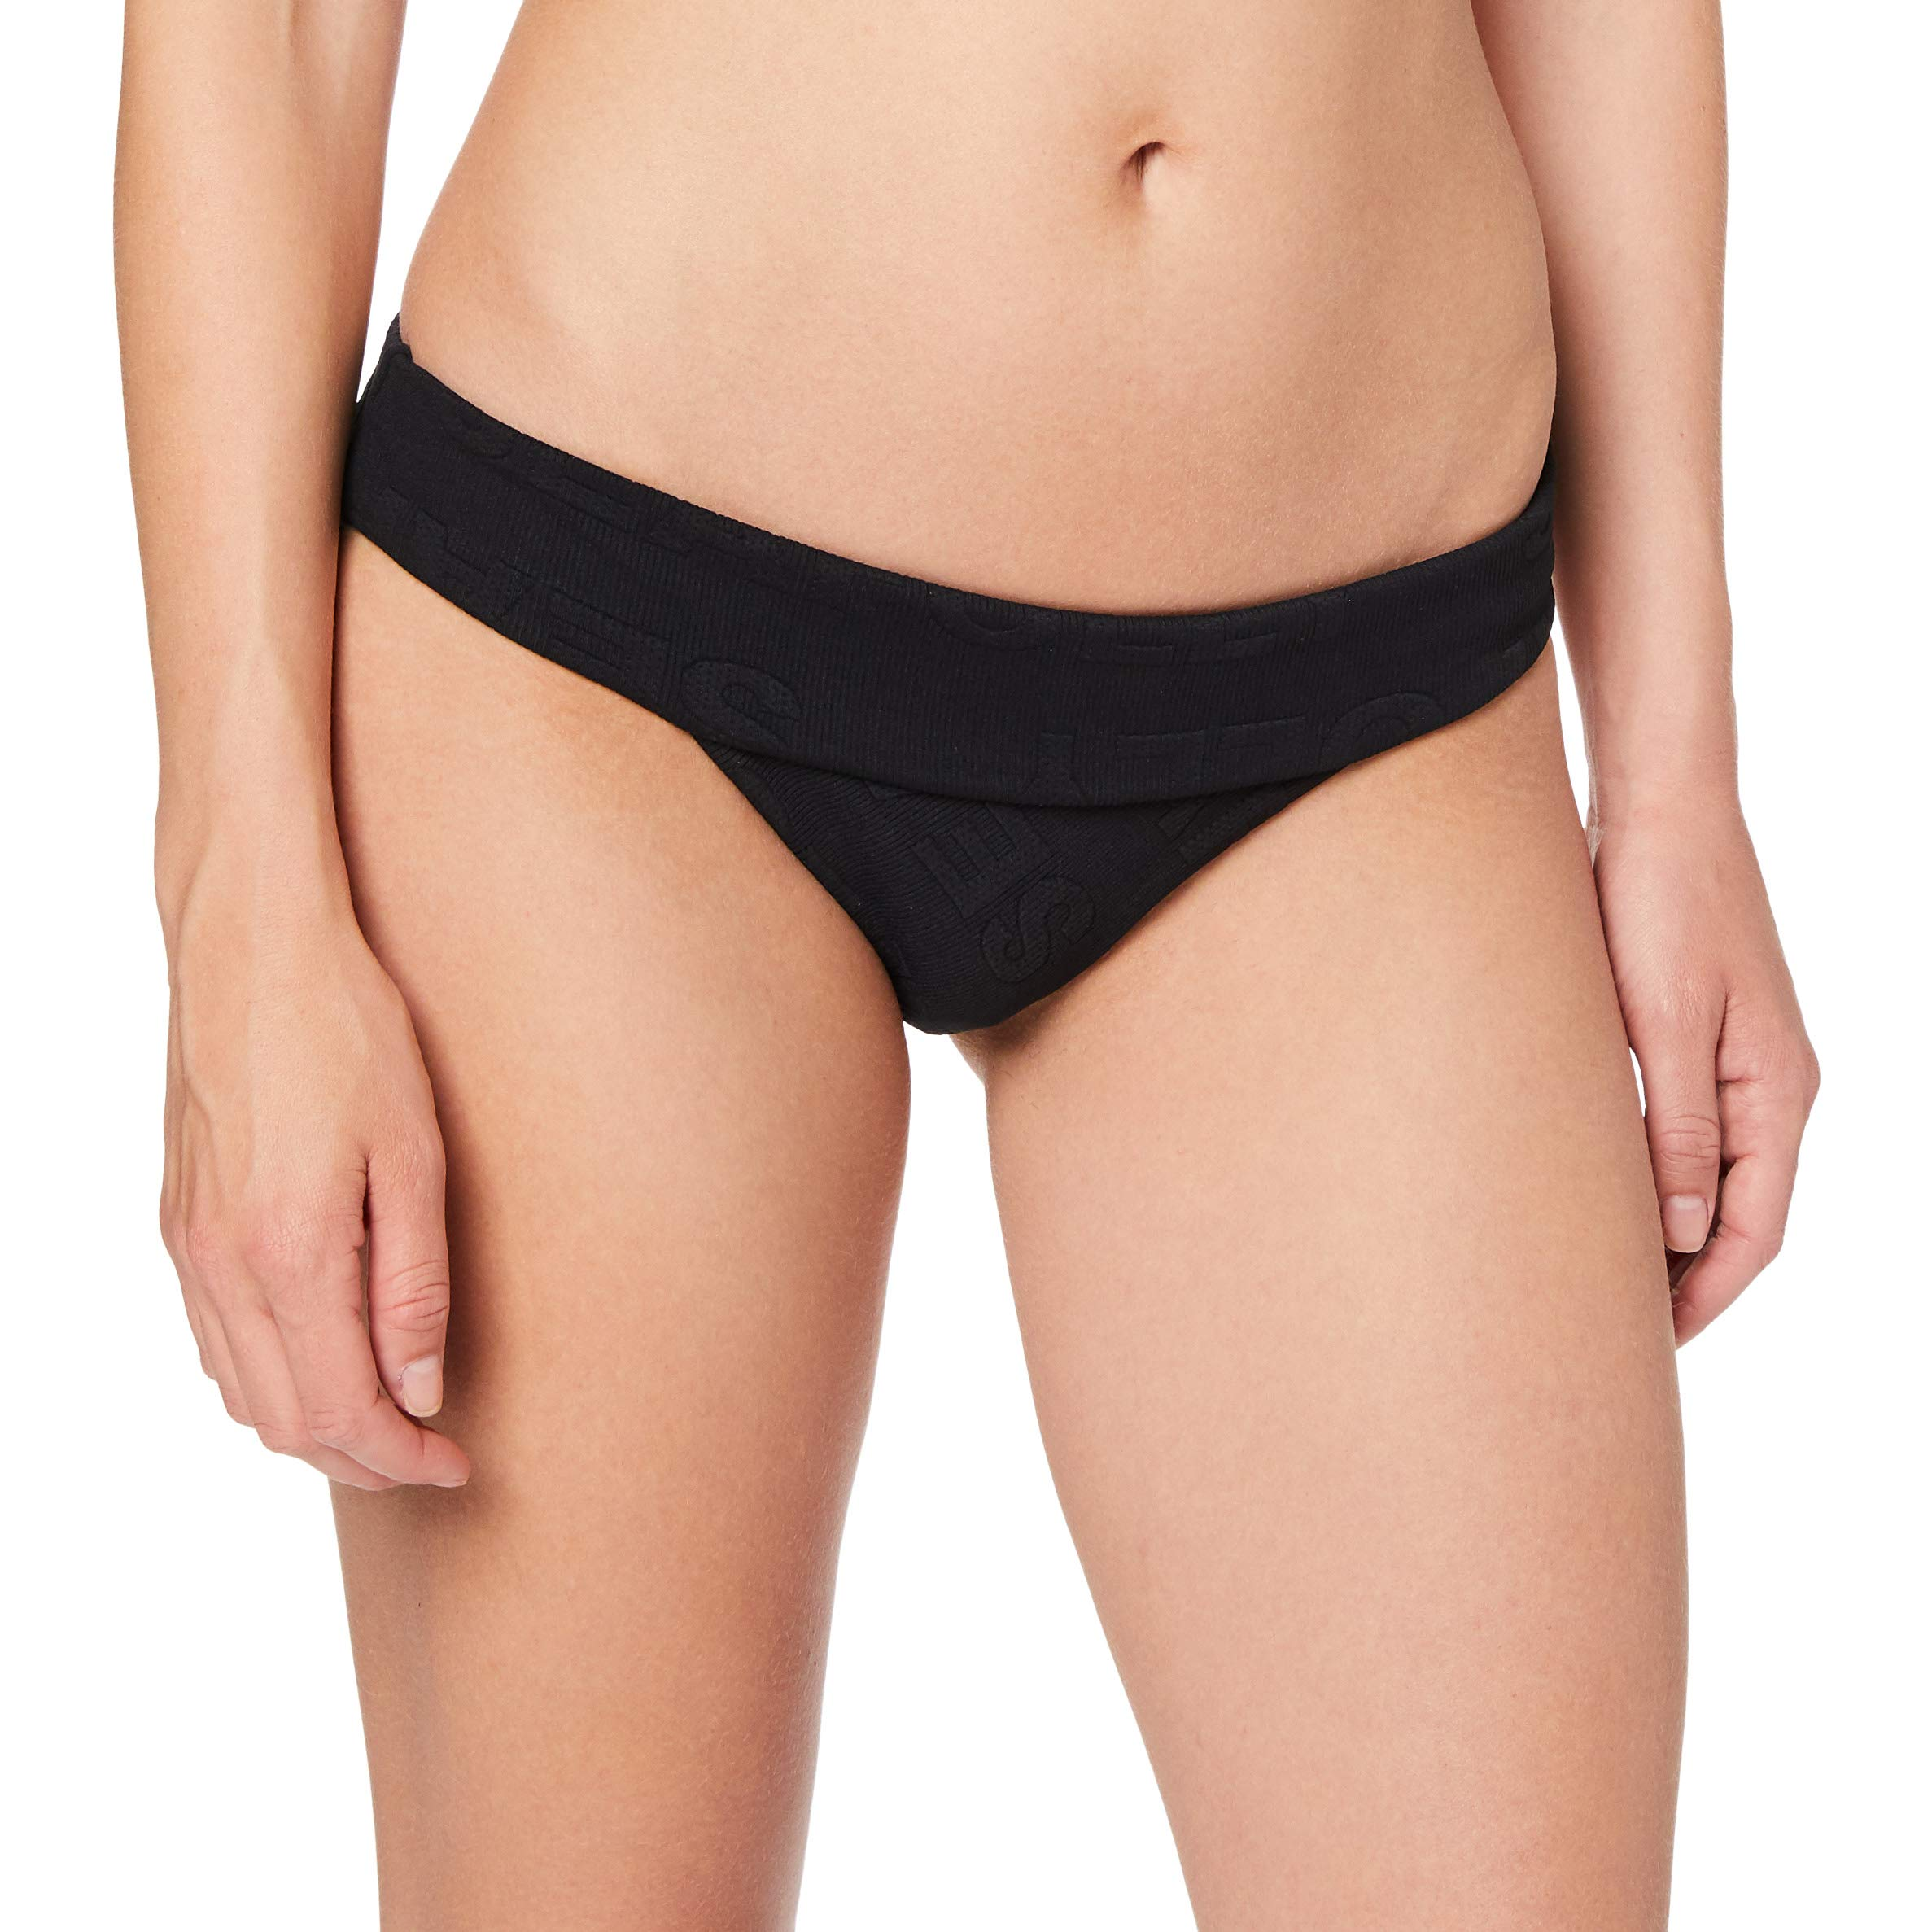 Your De Hipster Fabricant8Femme Black36taille Seafolly Type Bas MaillotNoir Banded iOkTZuPX